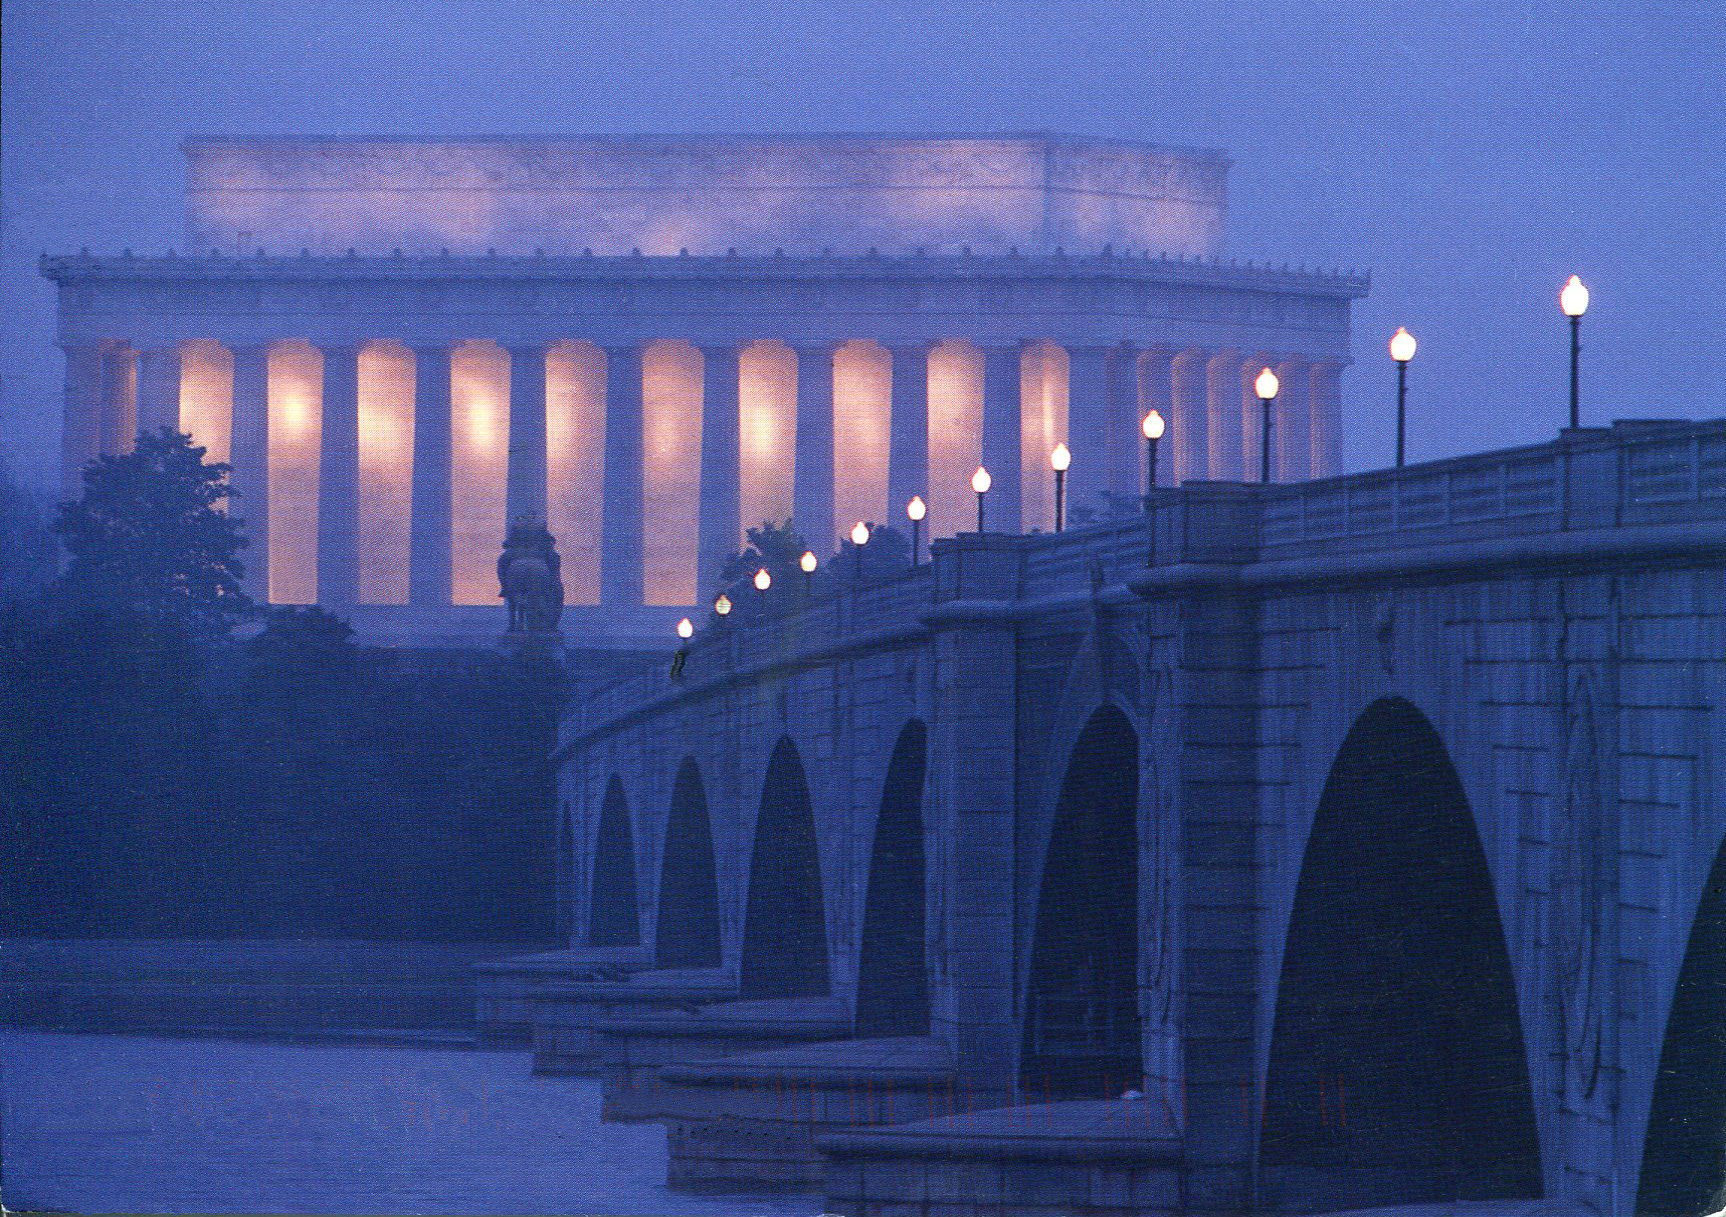 a lovely view of the lincoln memorial at twilight, seen beyond the bridge across the river. everything is soft and purple. the interior of the memorial is golden light. the lamps are lit on the bridge.